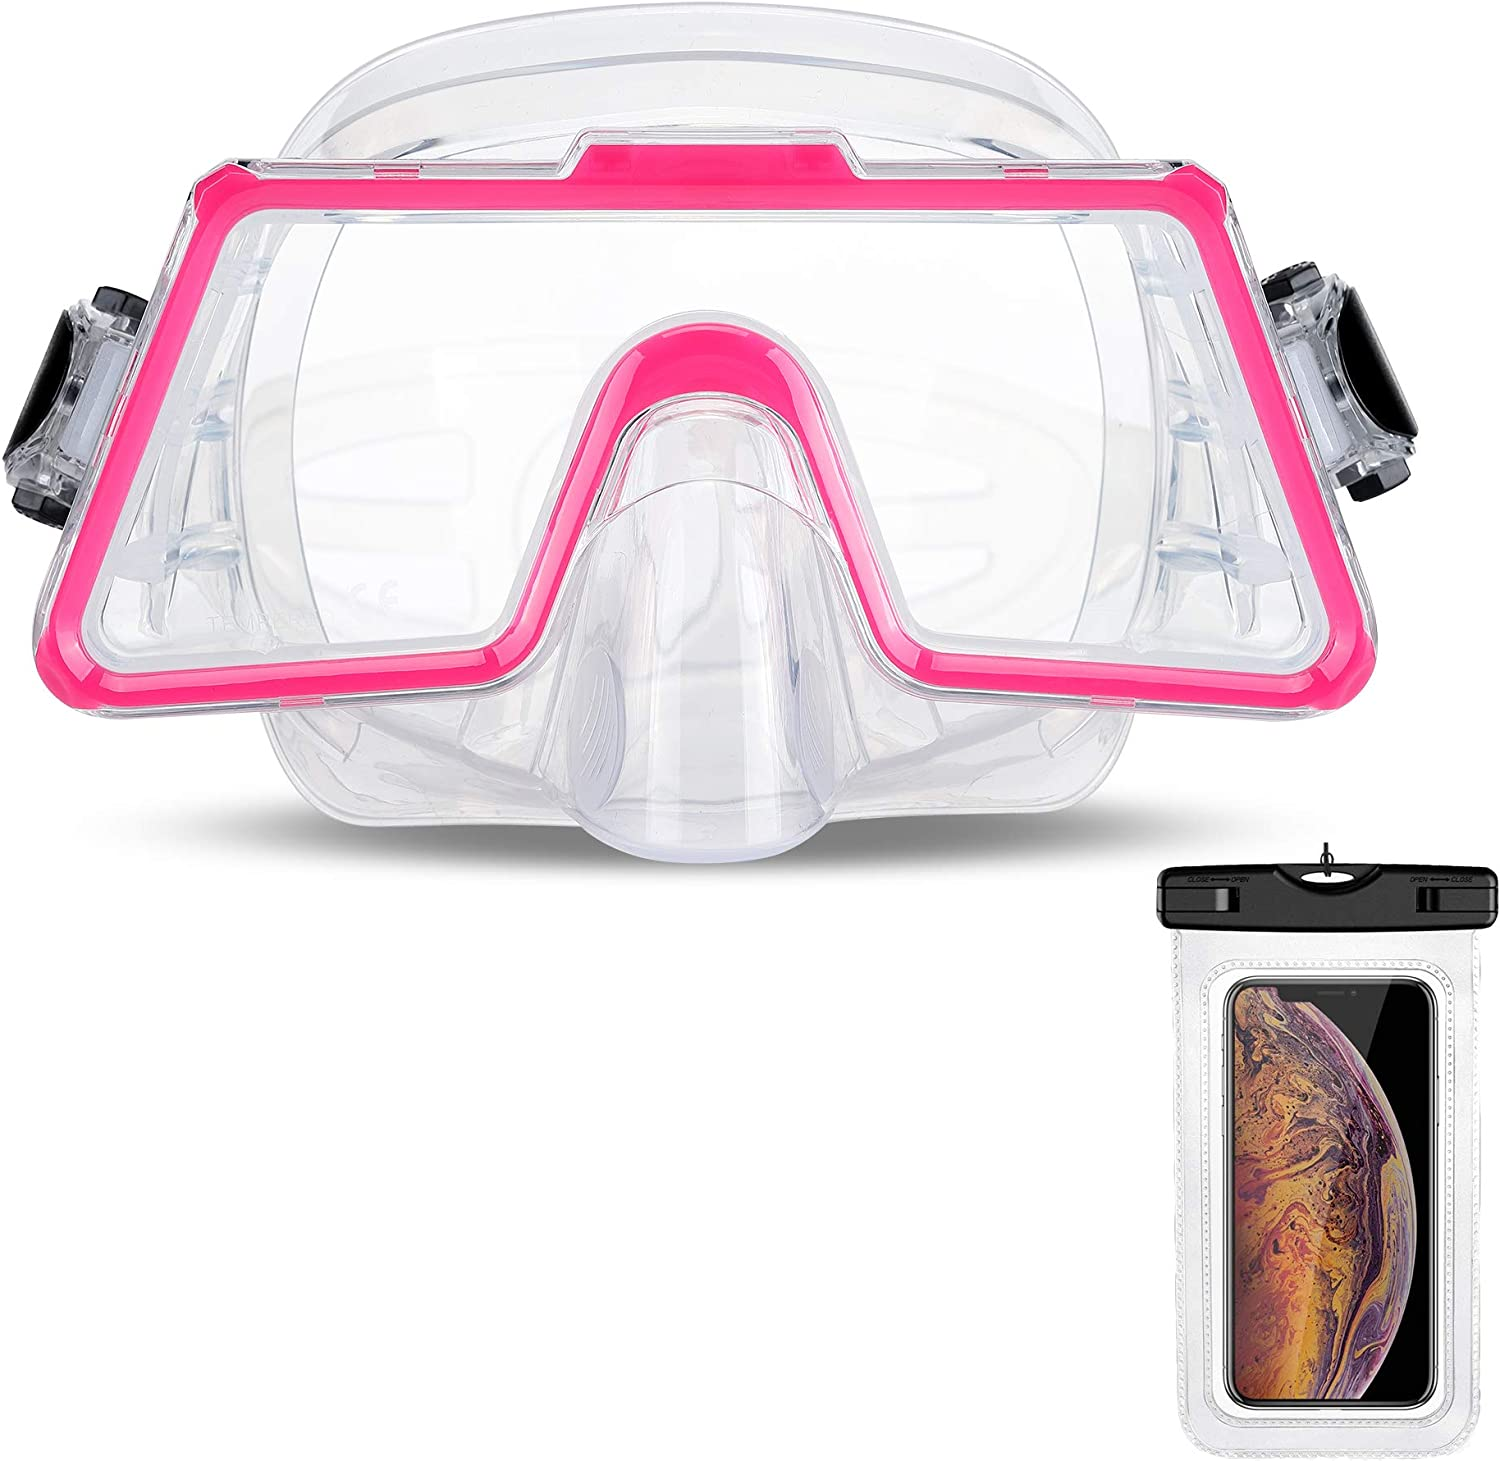 OMYAFL Snorkel Surprise price Diving Mask 180° View Direct store Adjus Panoramic and Easy